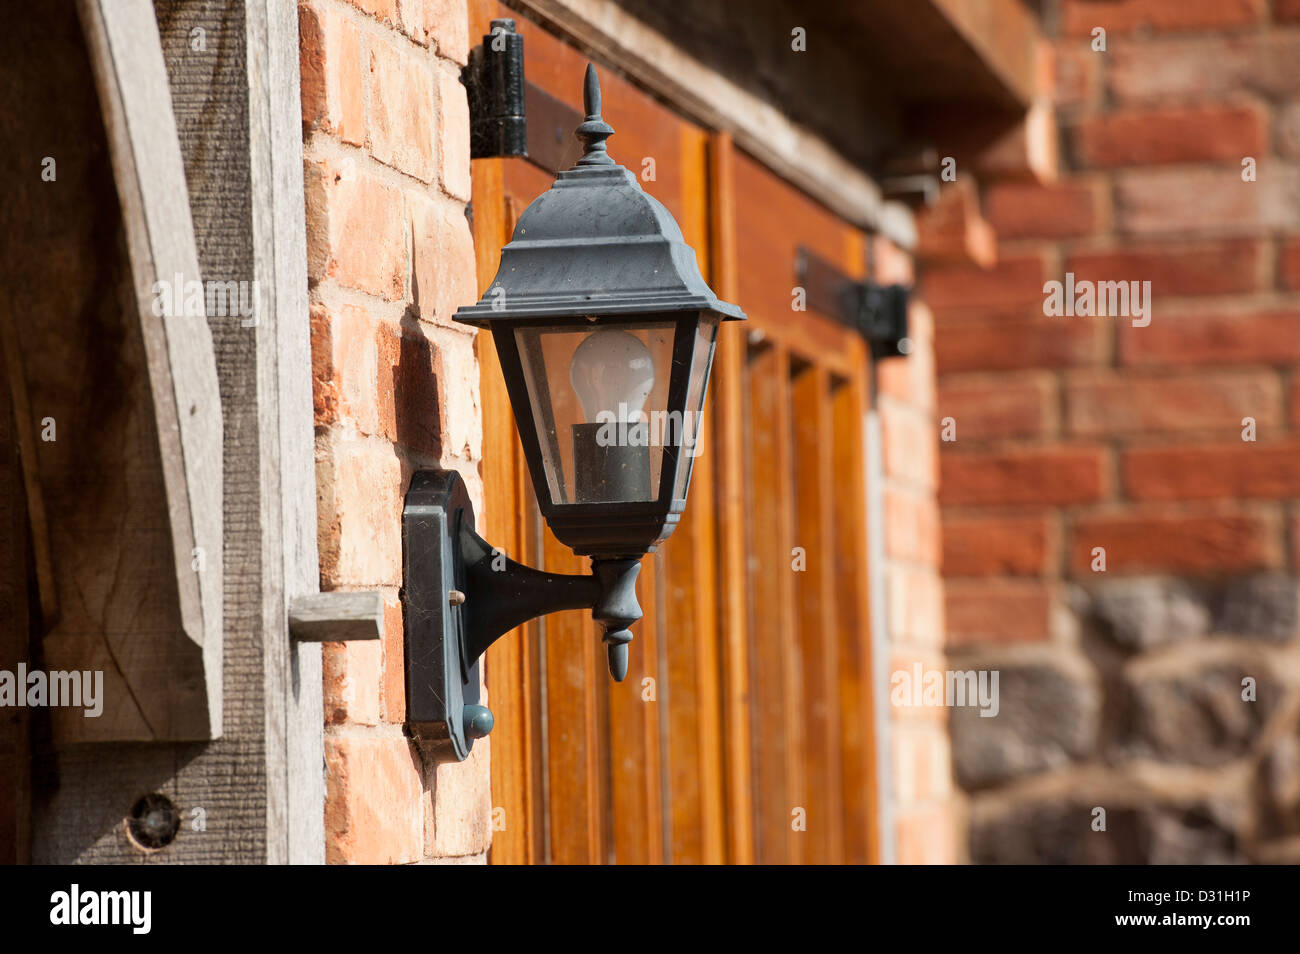 Lamp outside the entrance to a house. - Stock Image